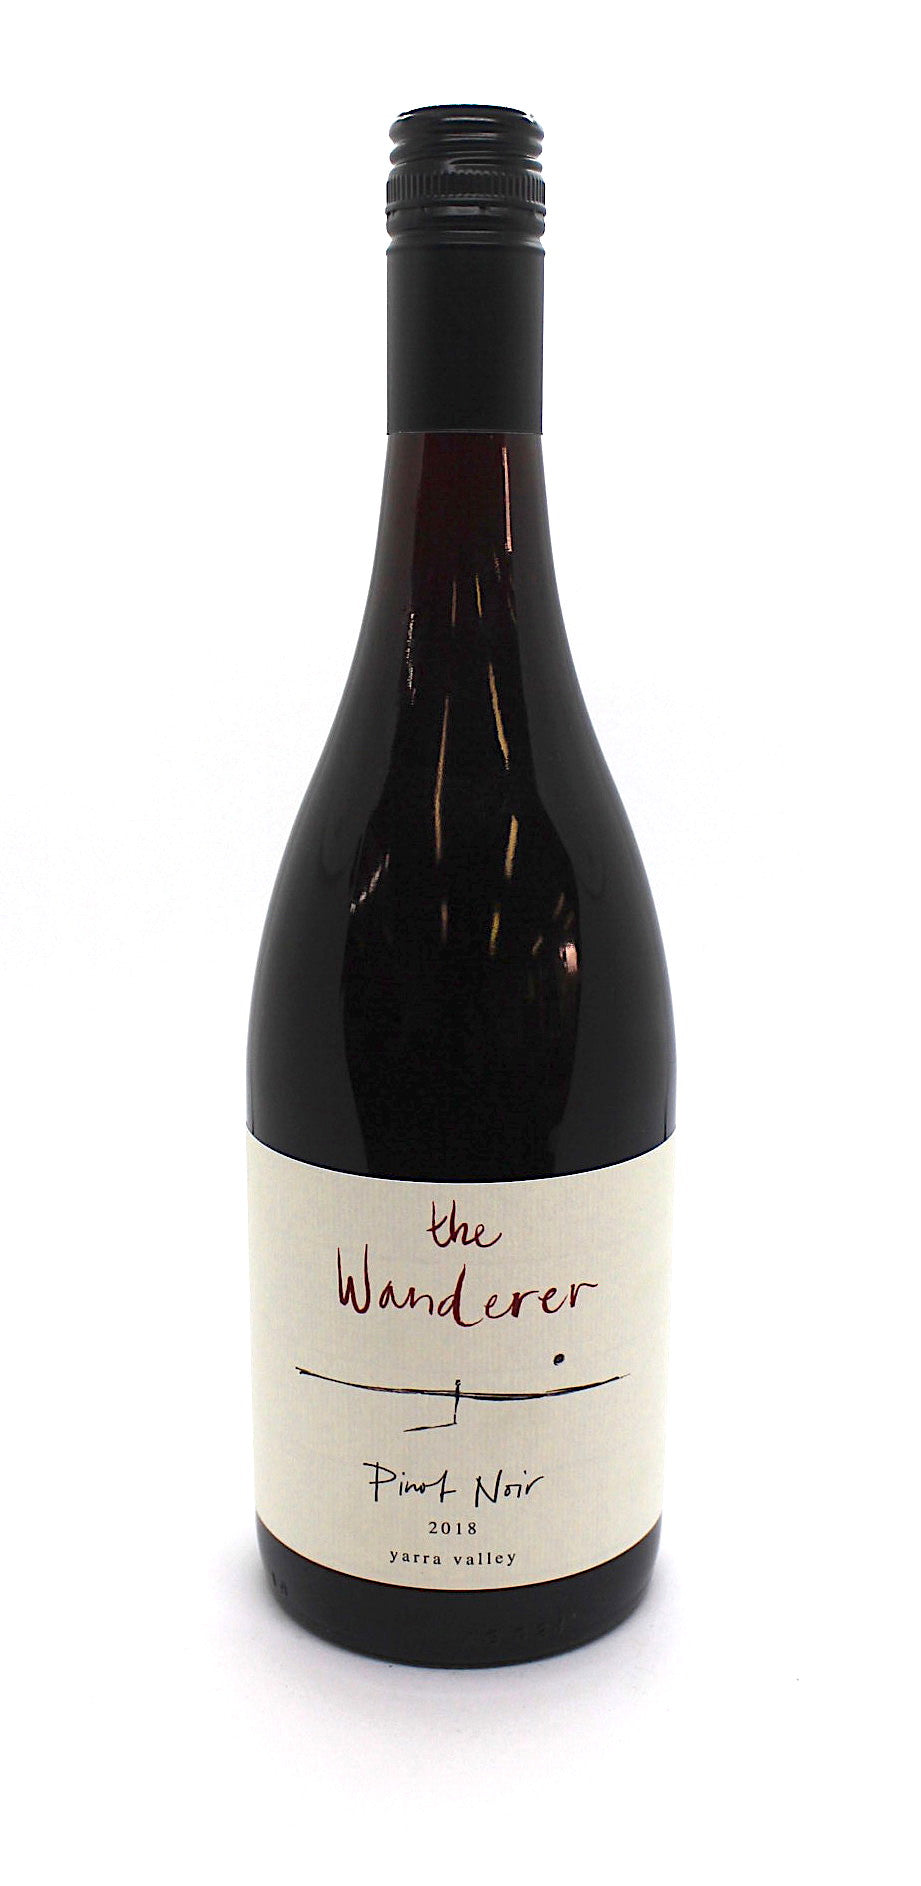 The Wanderer Yarra Valley Pinot Noir 2018